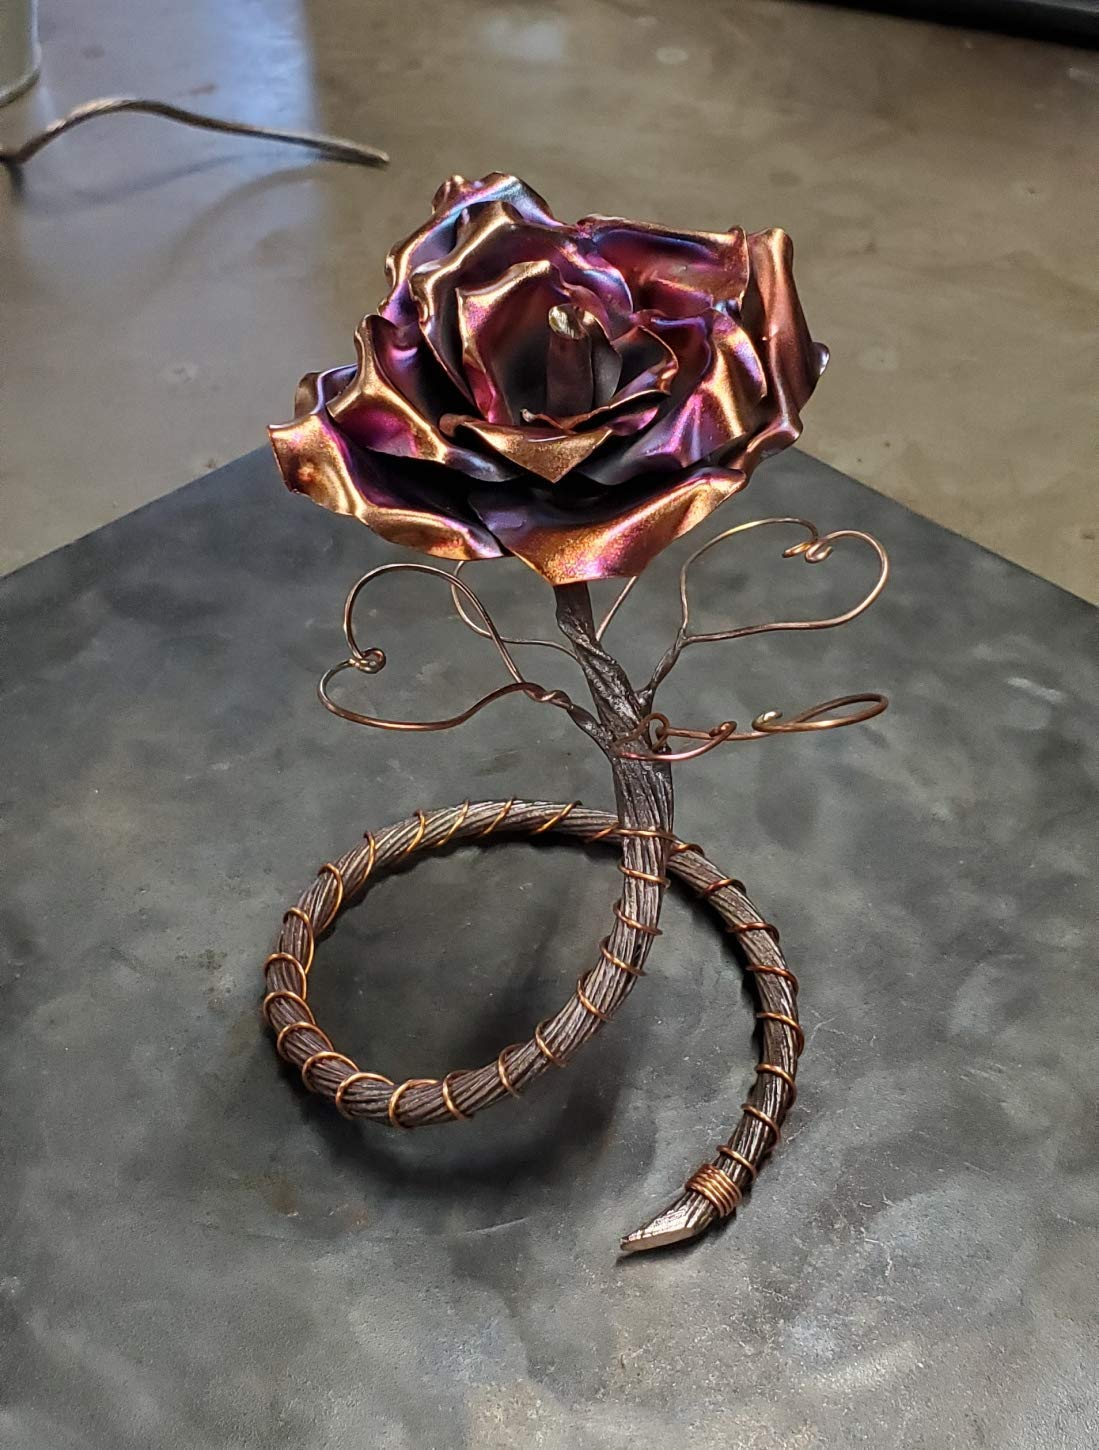 "Antique Copper Rose"" Be Mine"" 1383e *SAVE 15 SEE BELOW* Steampunk Industrial 7th Anniversary Wedding Birthday Valentine's Mother's Day Christmas Gift"